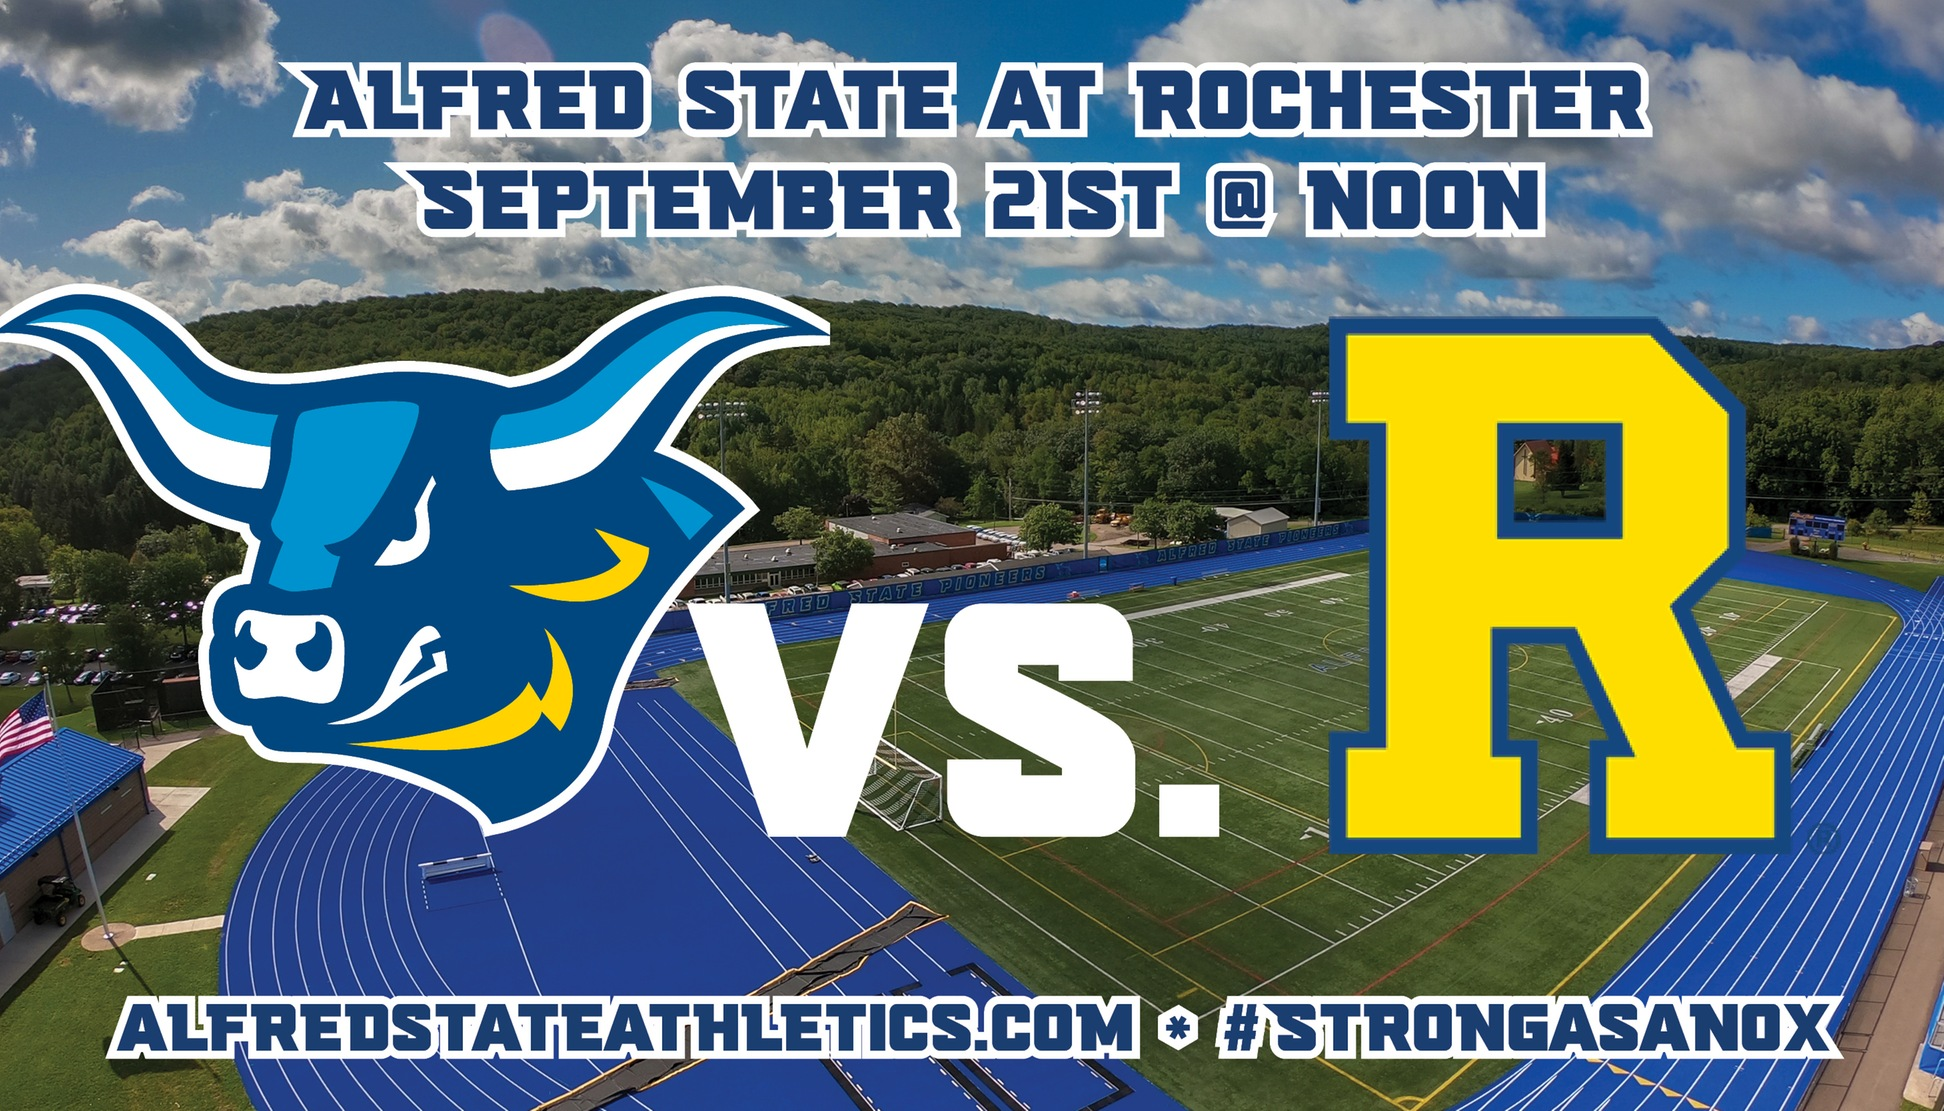 Alfred State travels to the University of Rochester on Saturday for a battle with the Yellowjackets